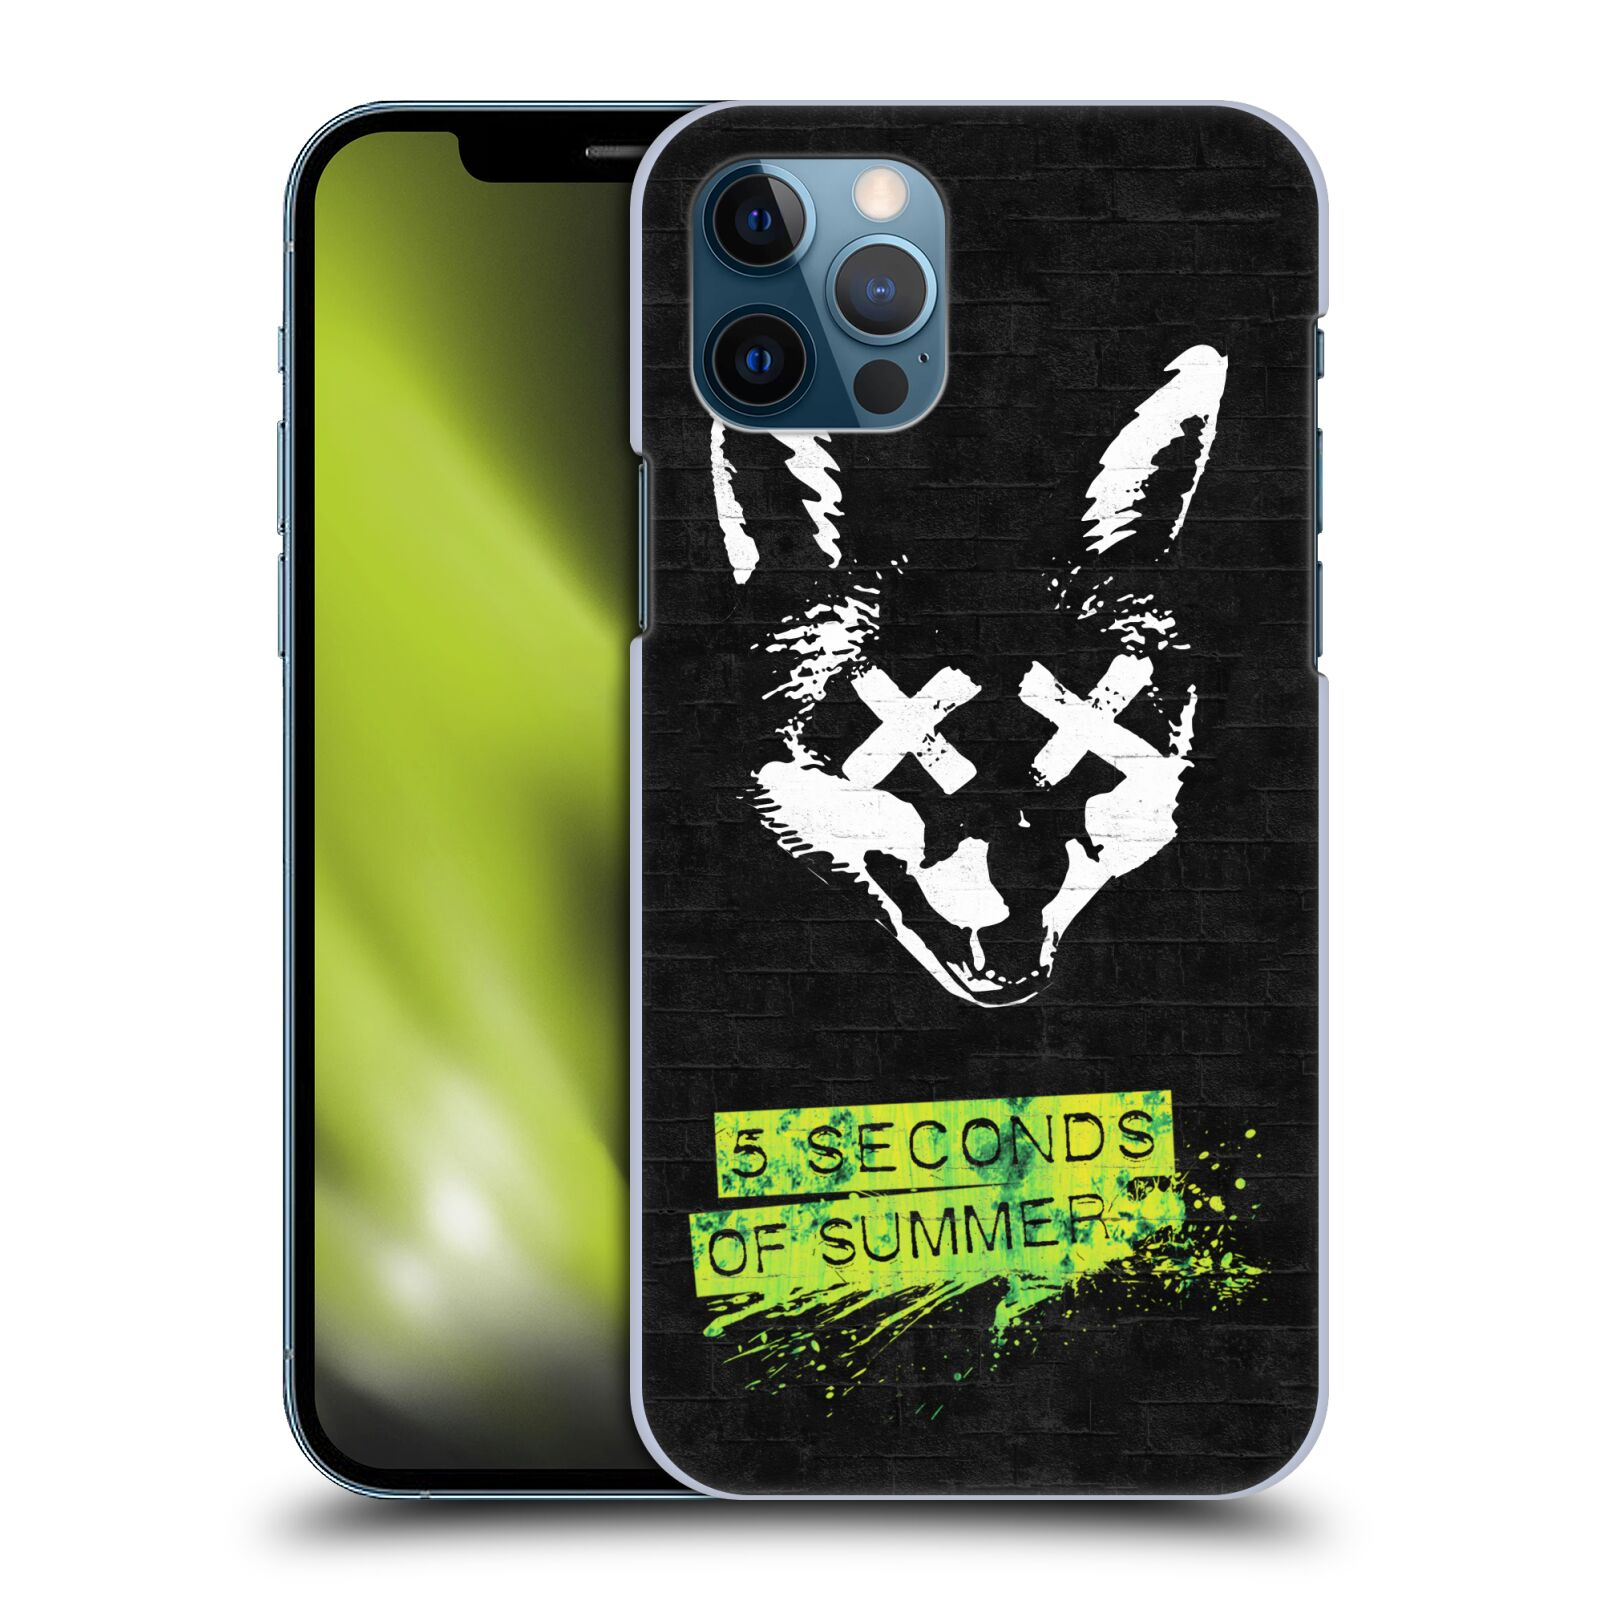 Plastové pouzdro na mobil Apple iPhone 12 / 12 Pro - Head Case - 5 Seconds of Summer - Fox